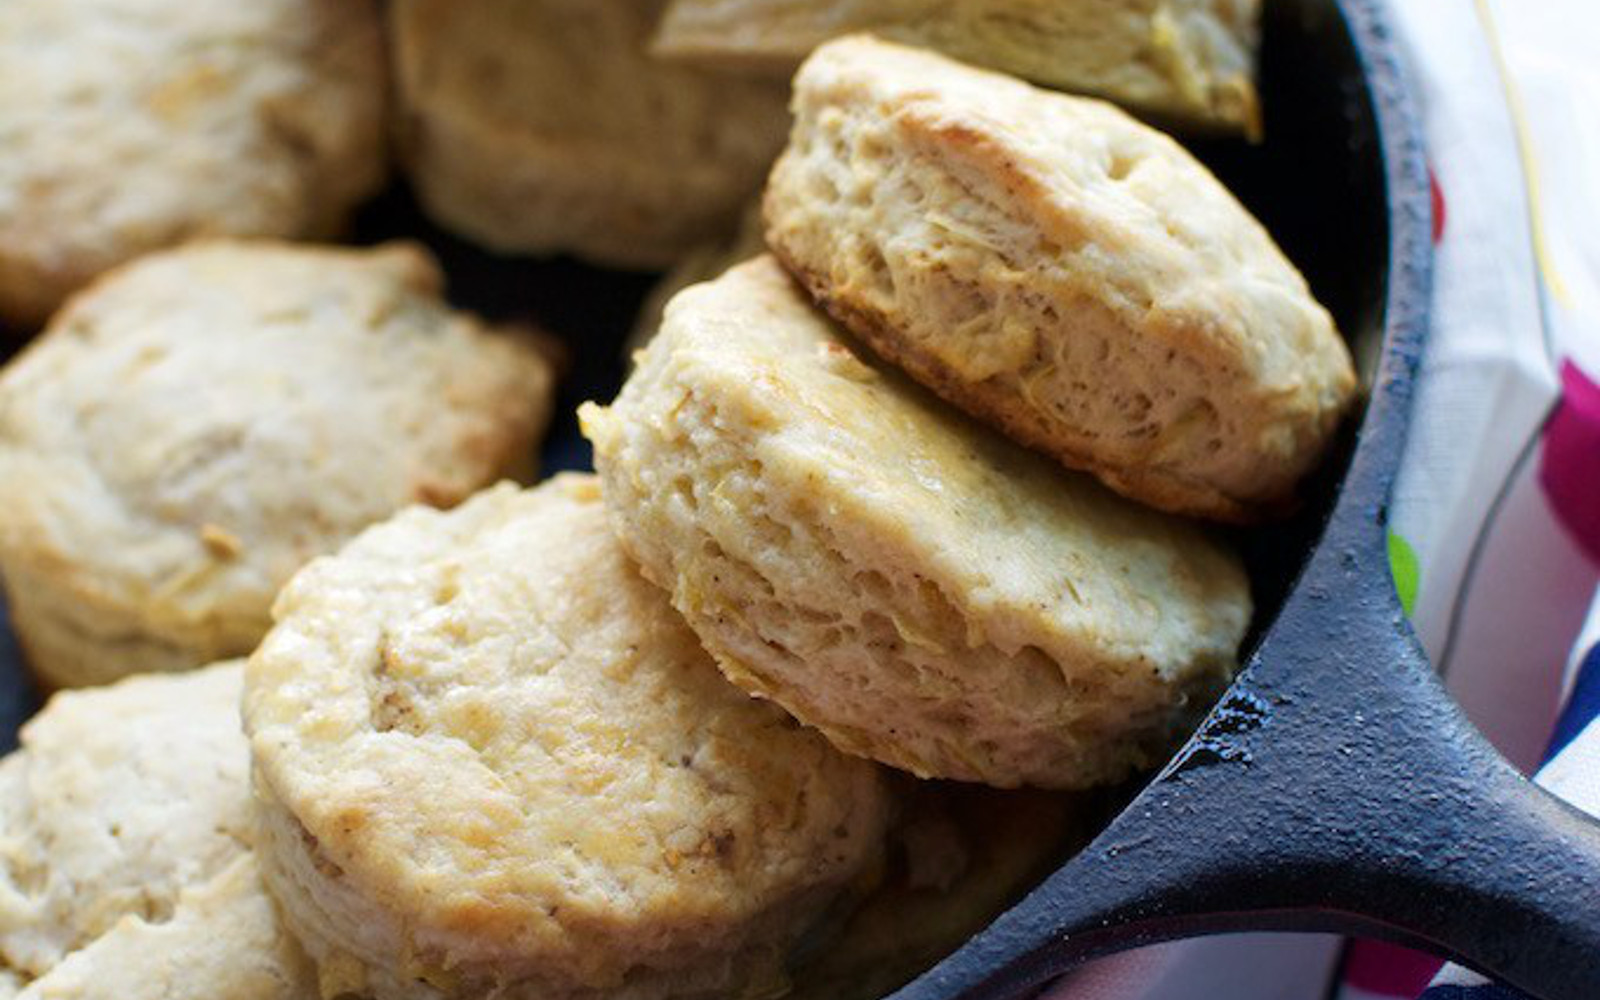 Vegan Apple Chili Biscuits